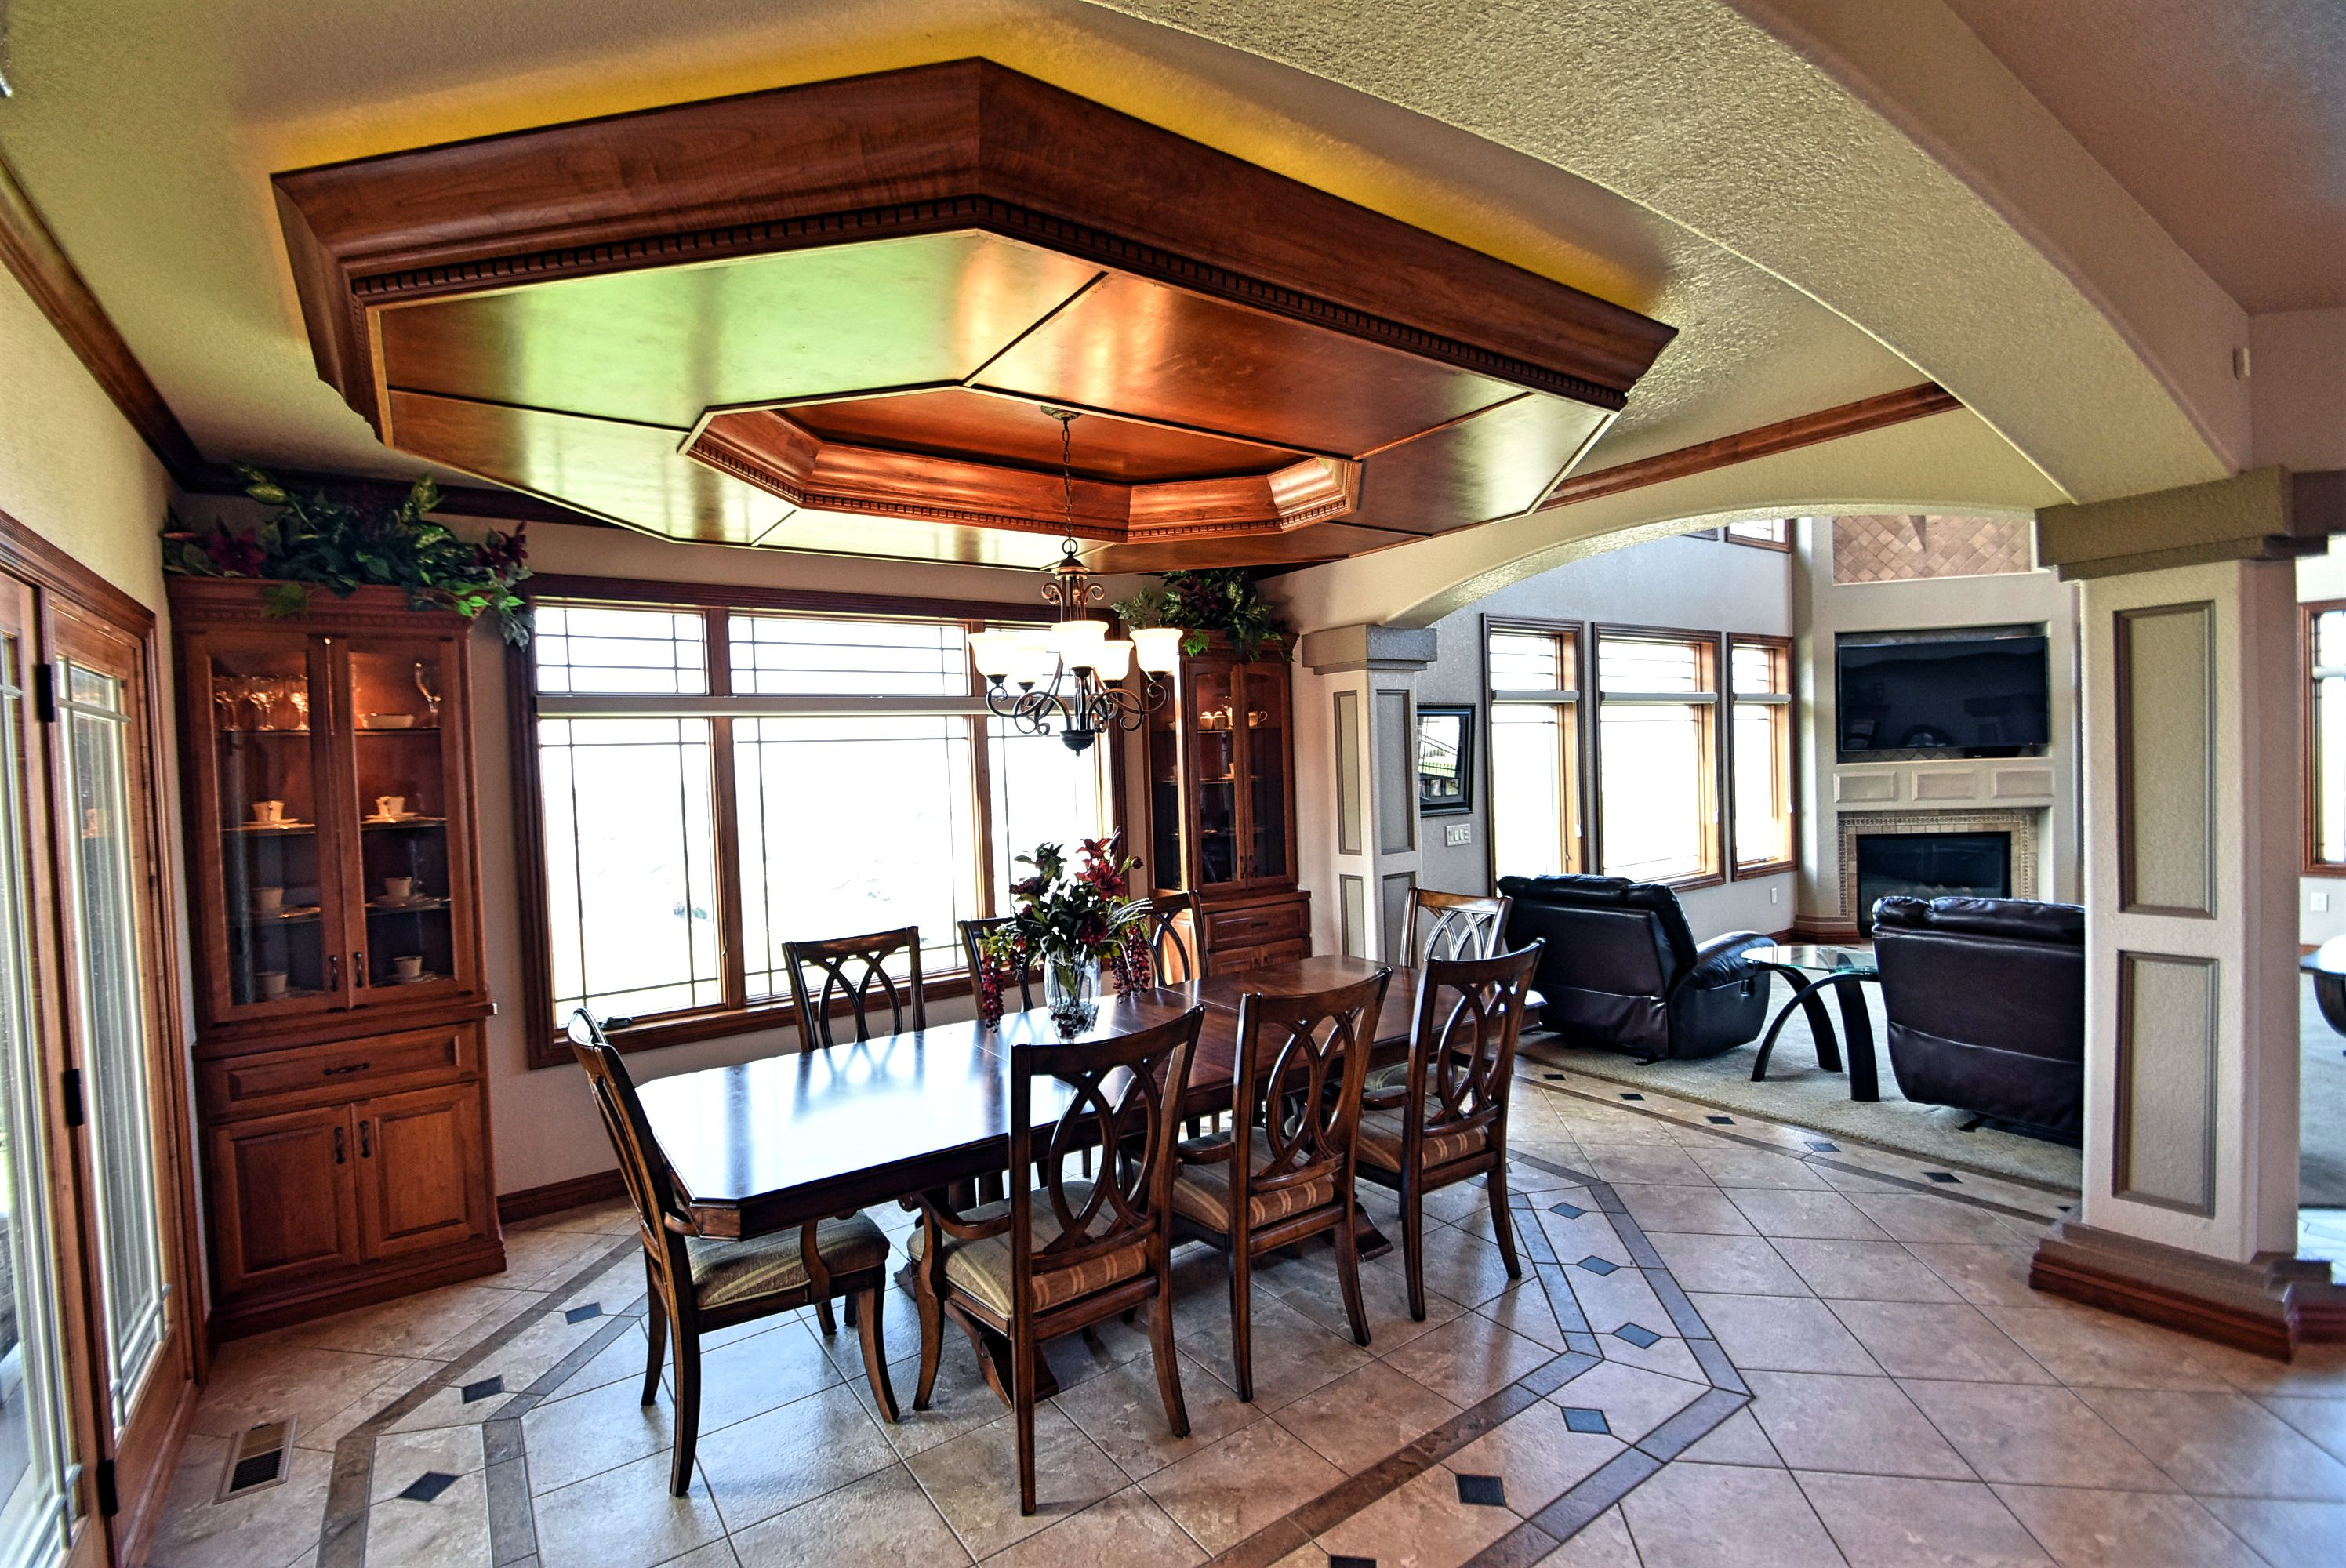 Dining room with cherry drop ceiling.